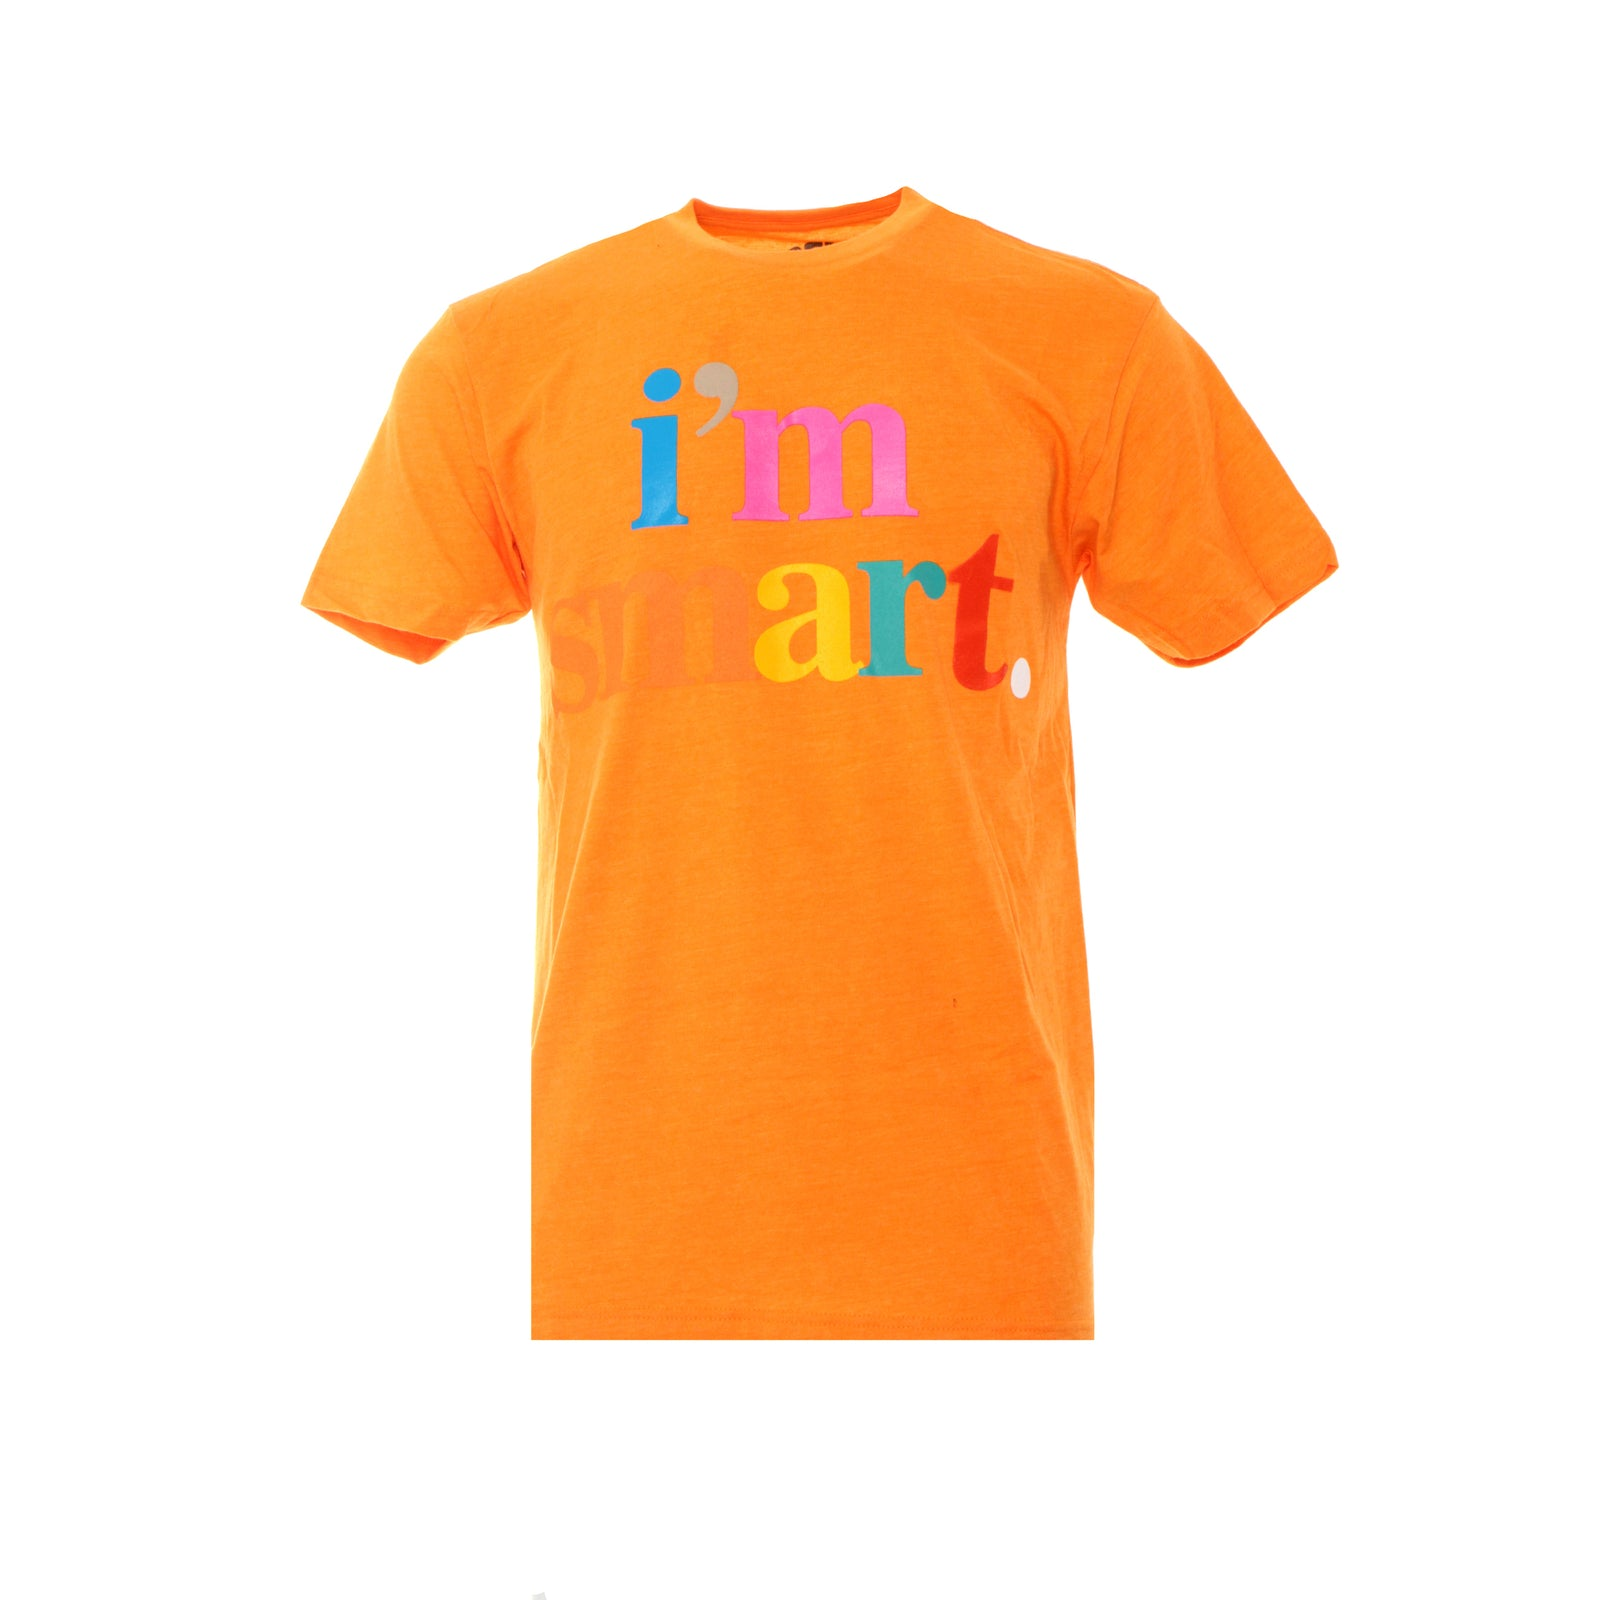 Fashion Geek I'm Smart Men's SS Graphic Tee Orange